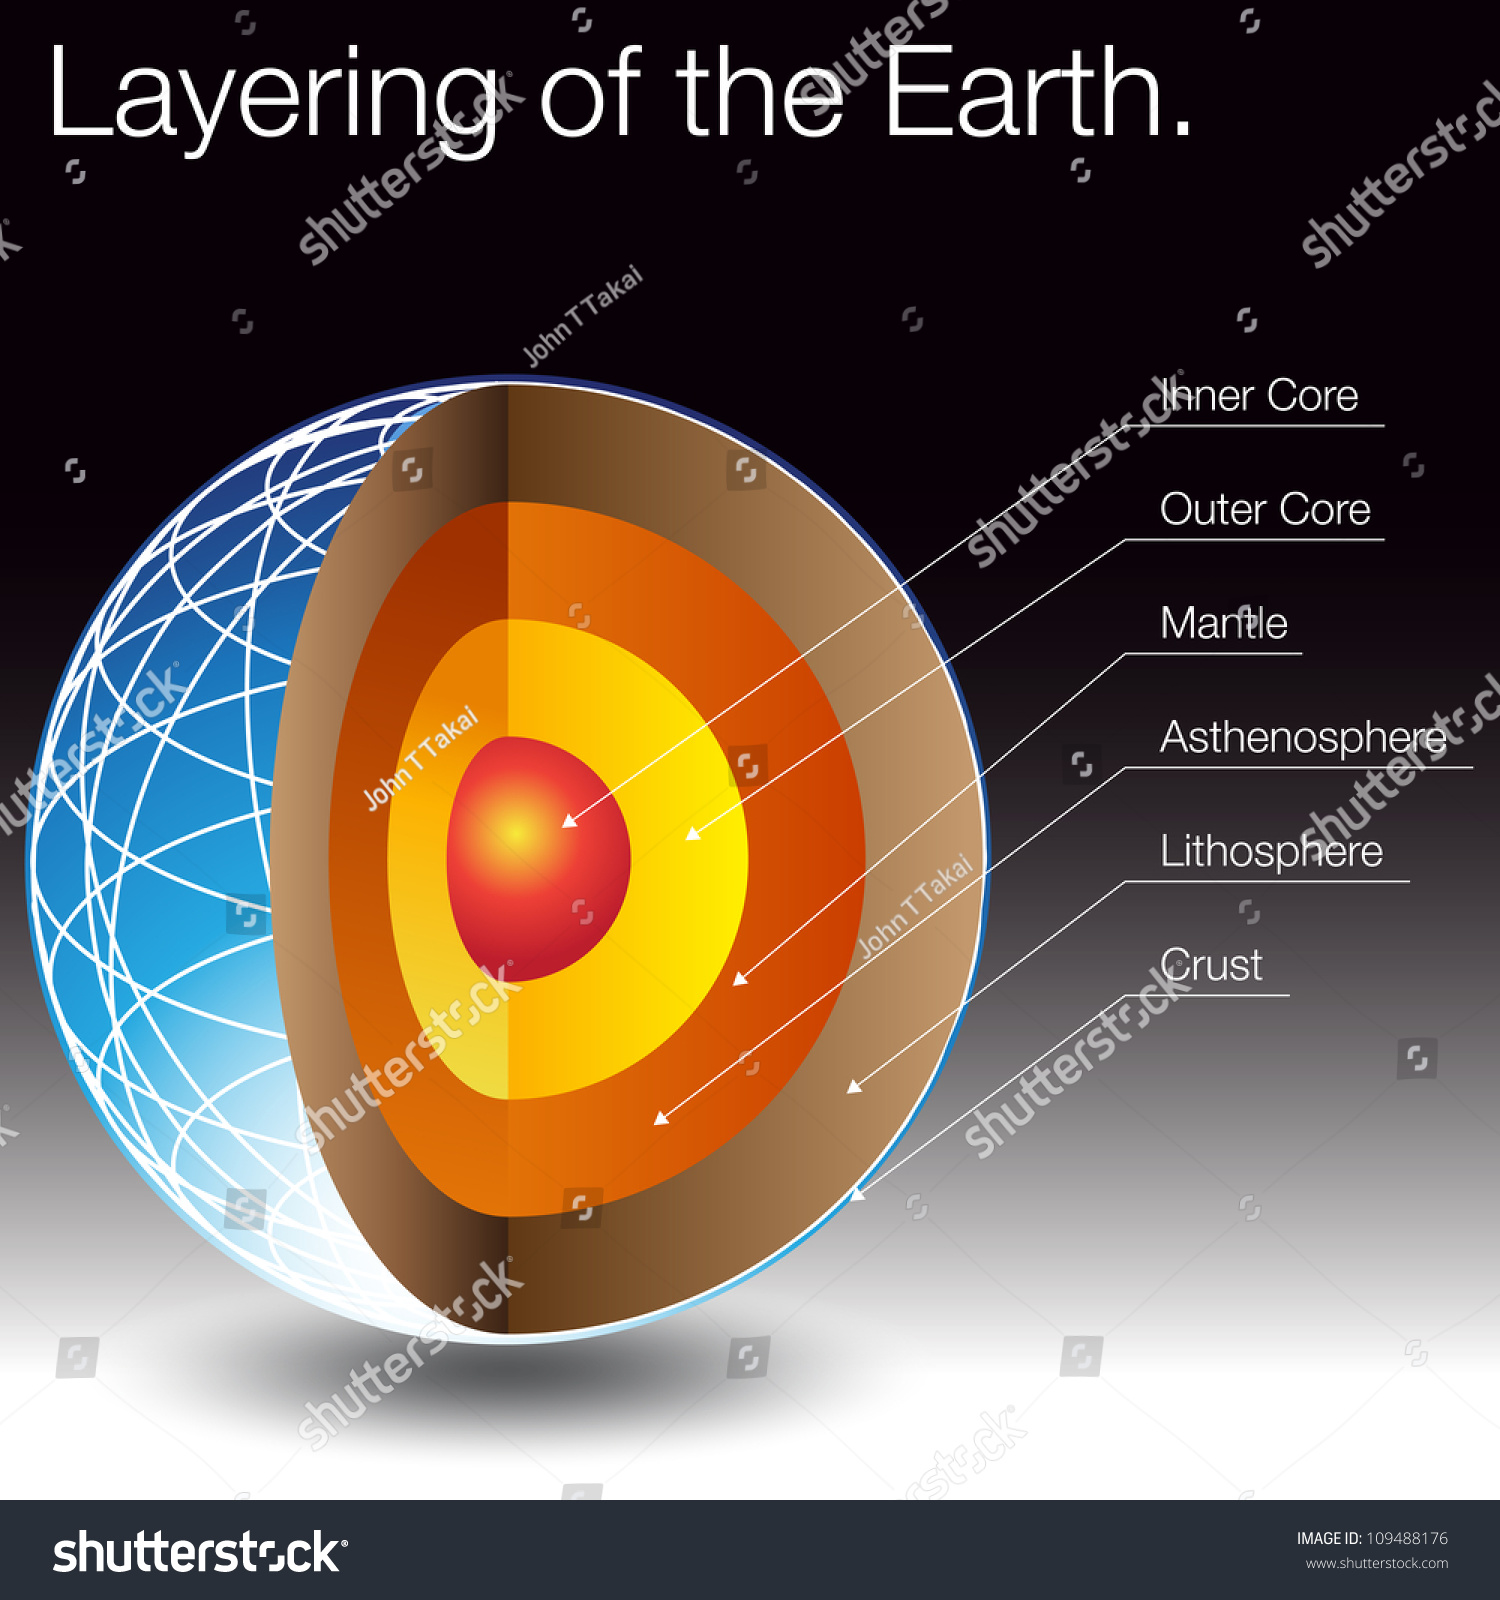 layers of the earth diagram ishikawa fish image stock vector 109488176 shutterstock